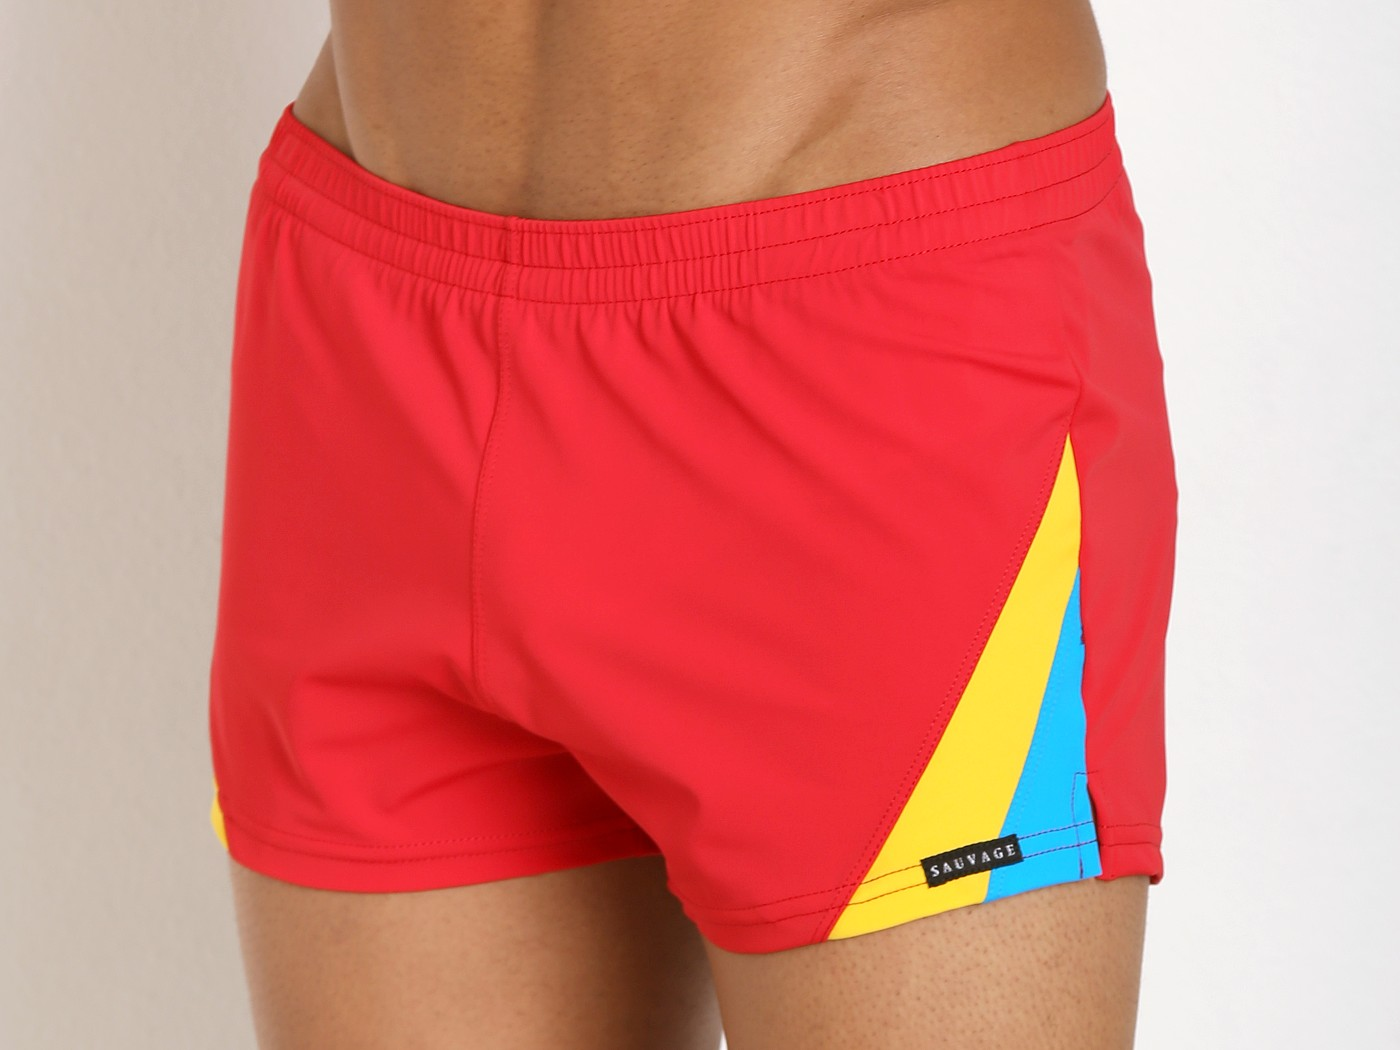 bb006a1f755f6 Sauvage European Nylon Lycra Color Block Swim Trunk Red 187RYT at International  Jock